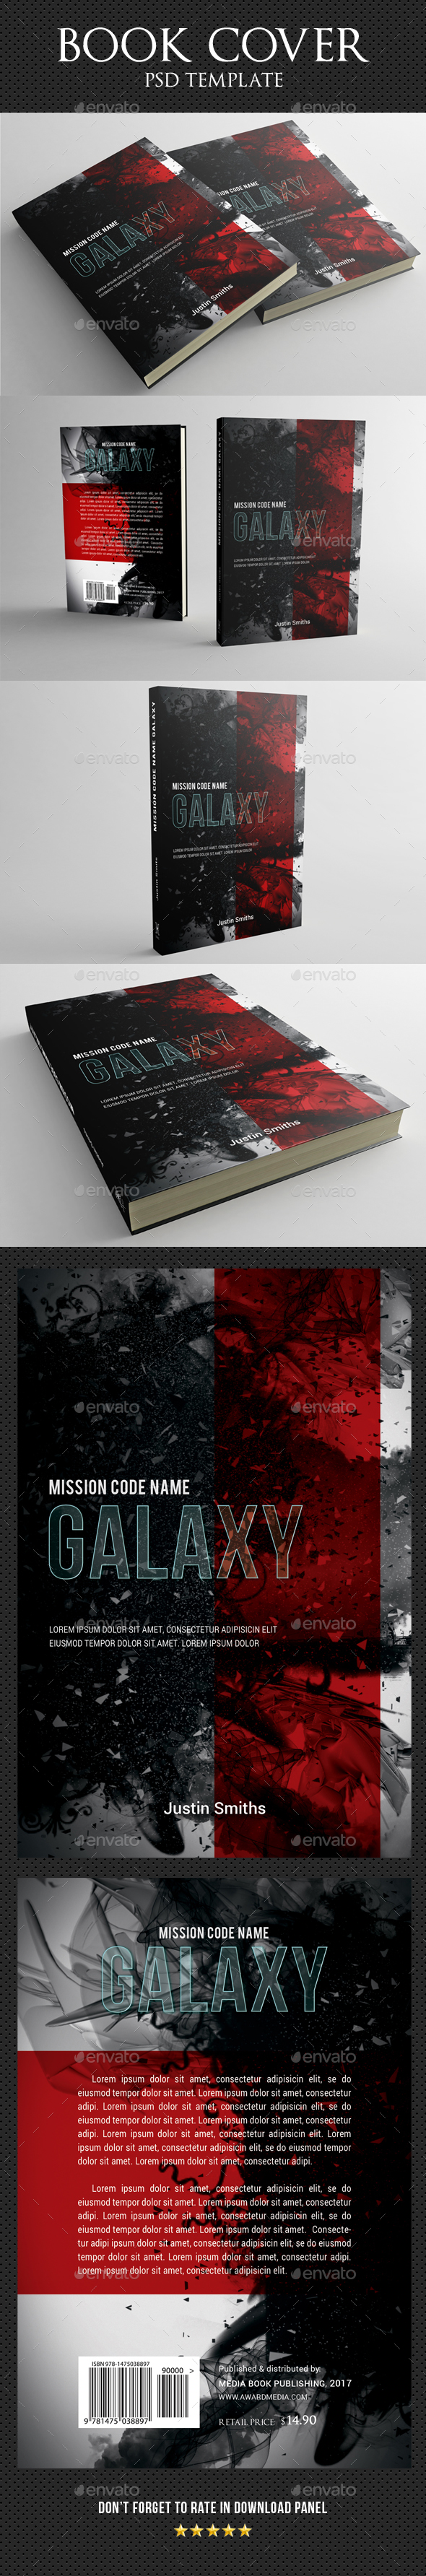 Book Cover Template 33 - Miscellaneous Print Templates